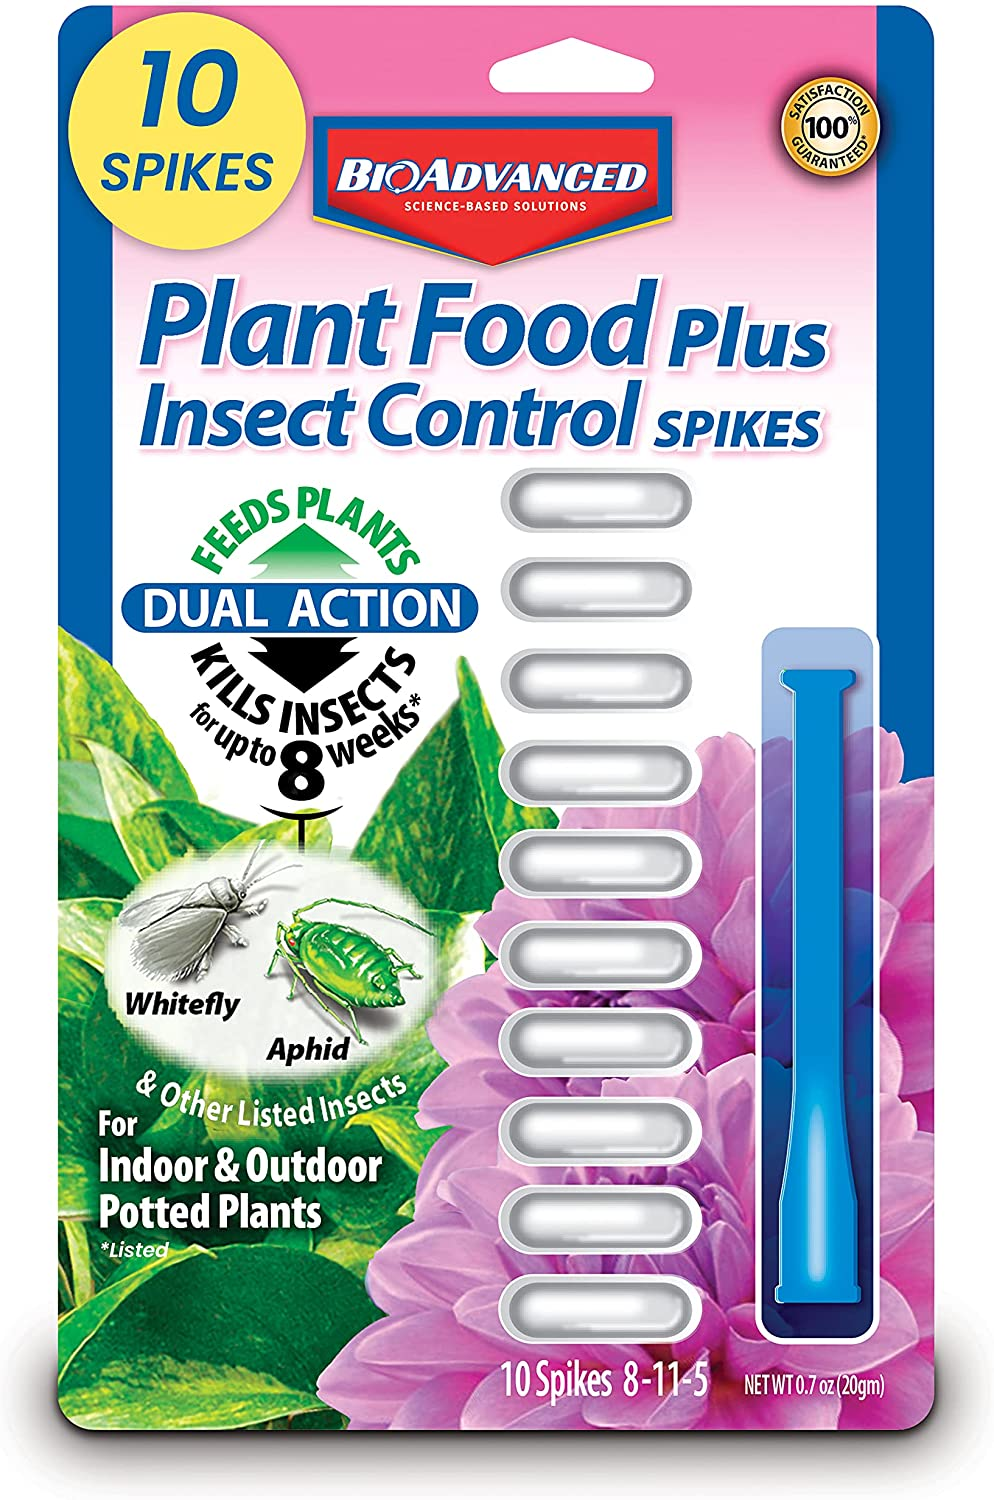 BioAdvanced 701710 8-11-5 Fertilizer with Imidacloprid Plant Food Plus Insect Control Spikes, 10